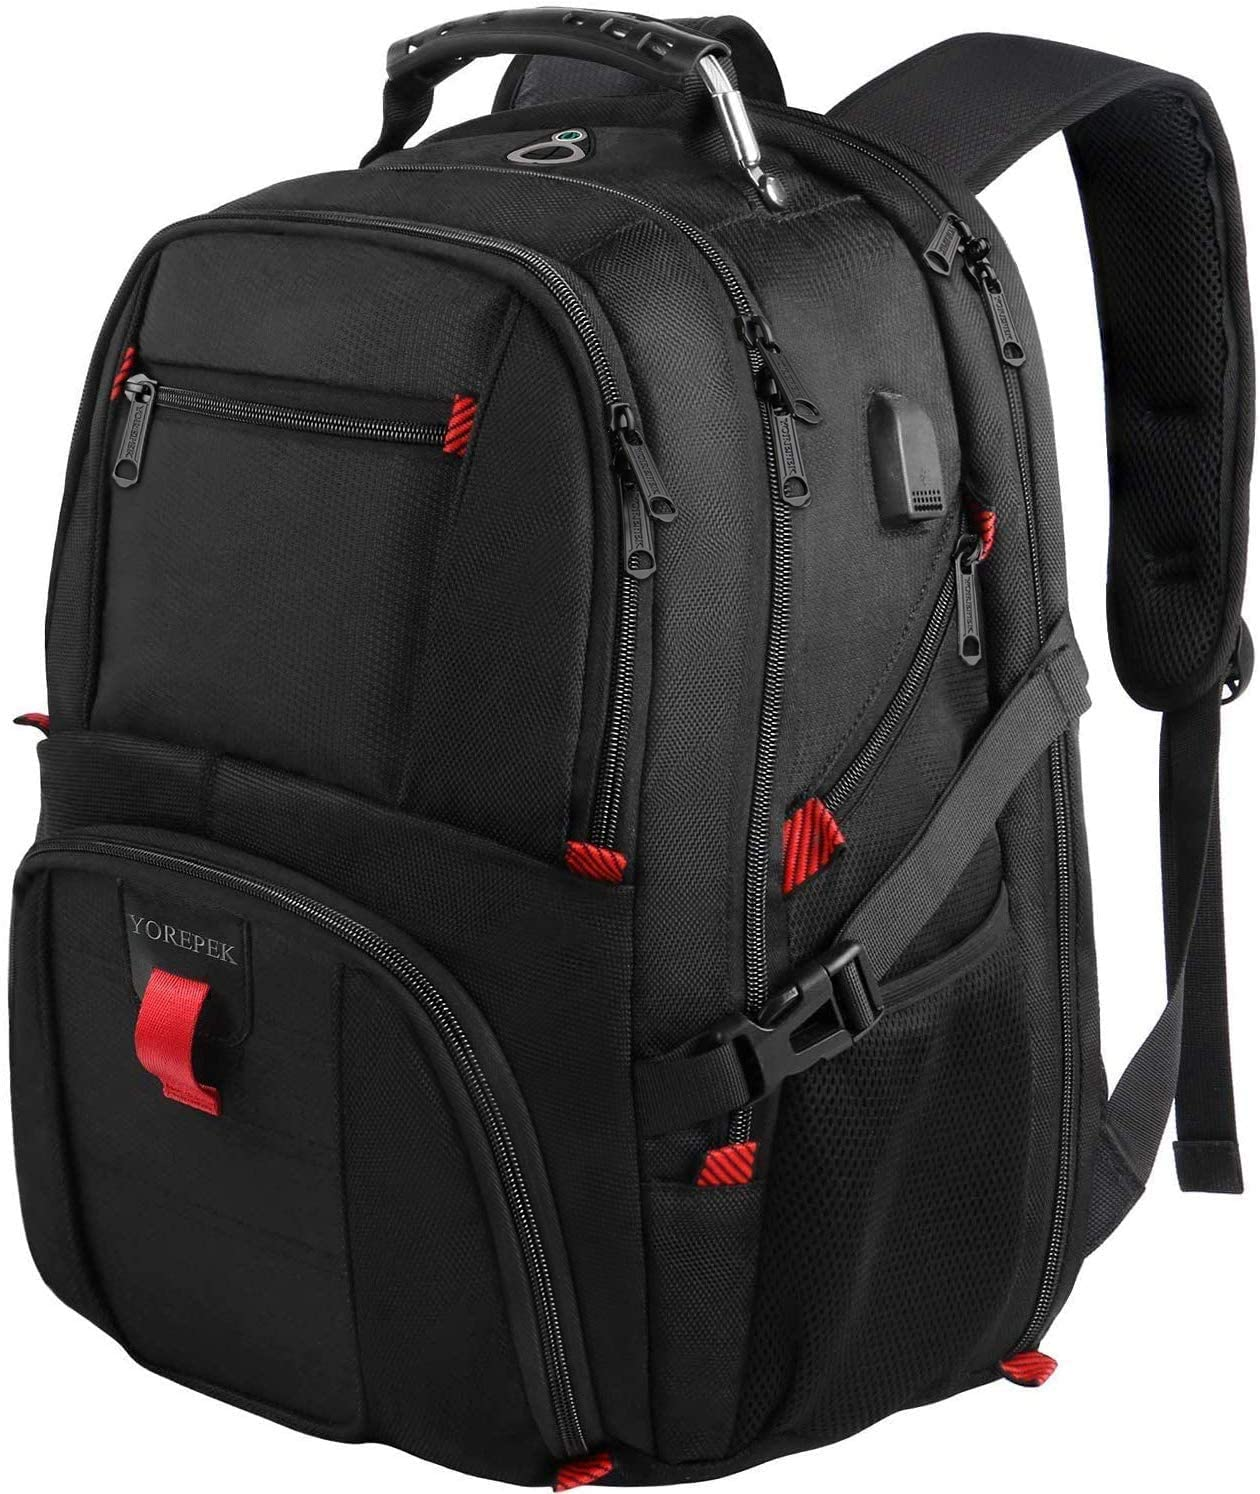 YOREPEK College Travel Laptop Backpack & USB Charging Port